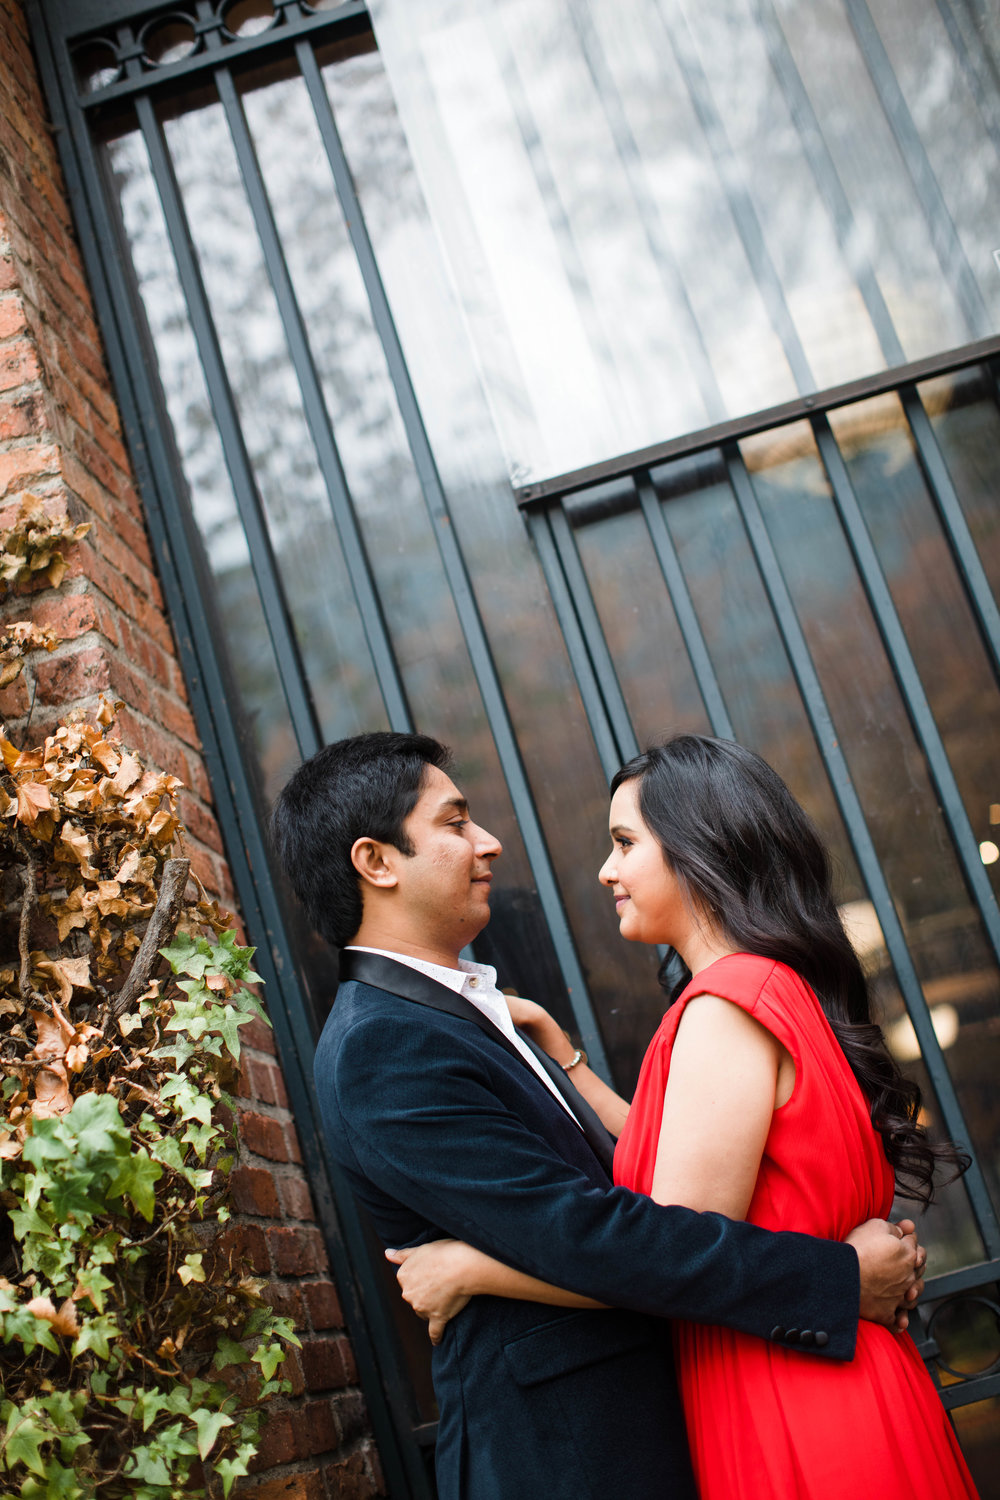 Sushat+Nancy_Engagement_Pioneer+Square_Sculpture+Park_Seattle_Oct2016_APW24.jpg